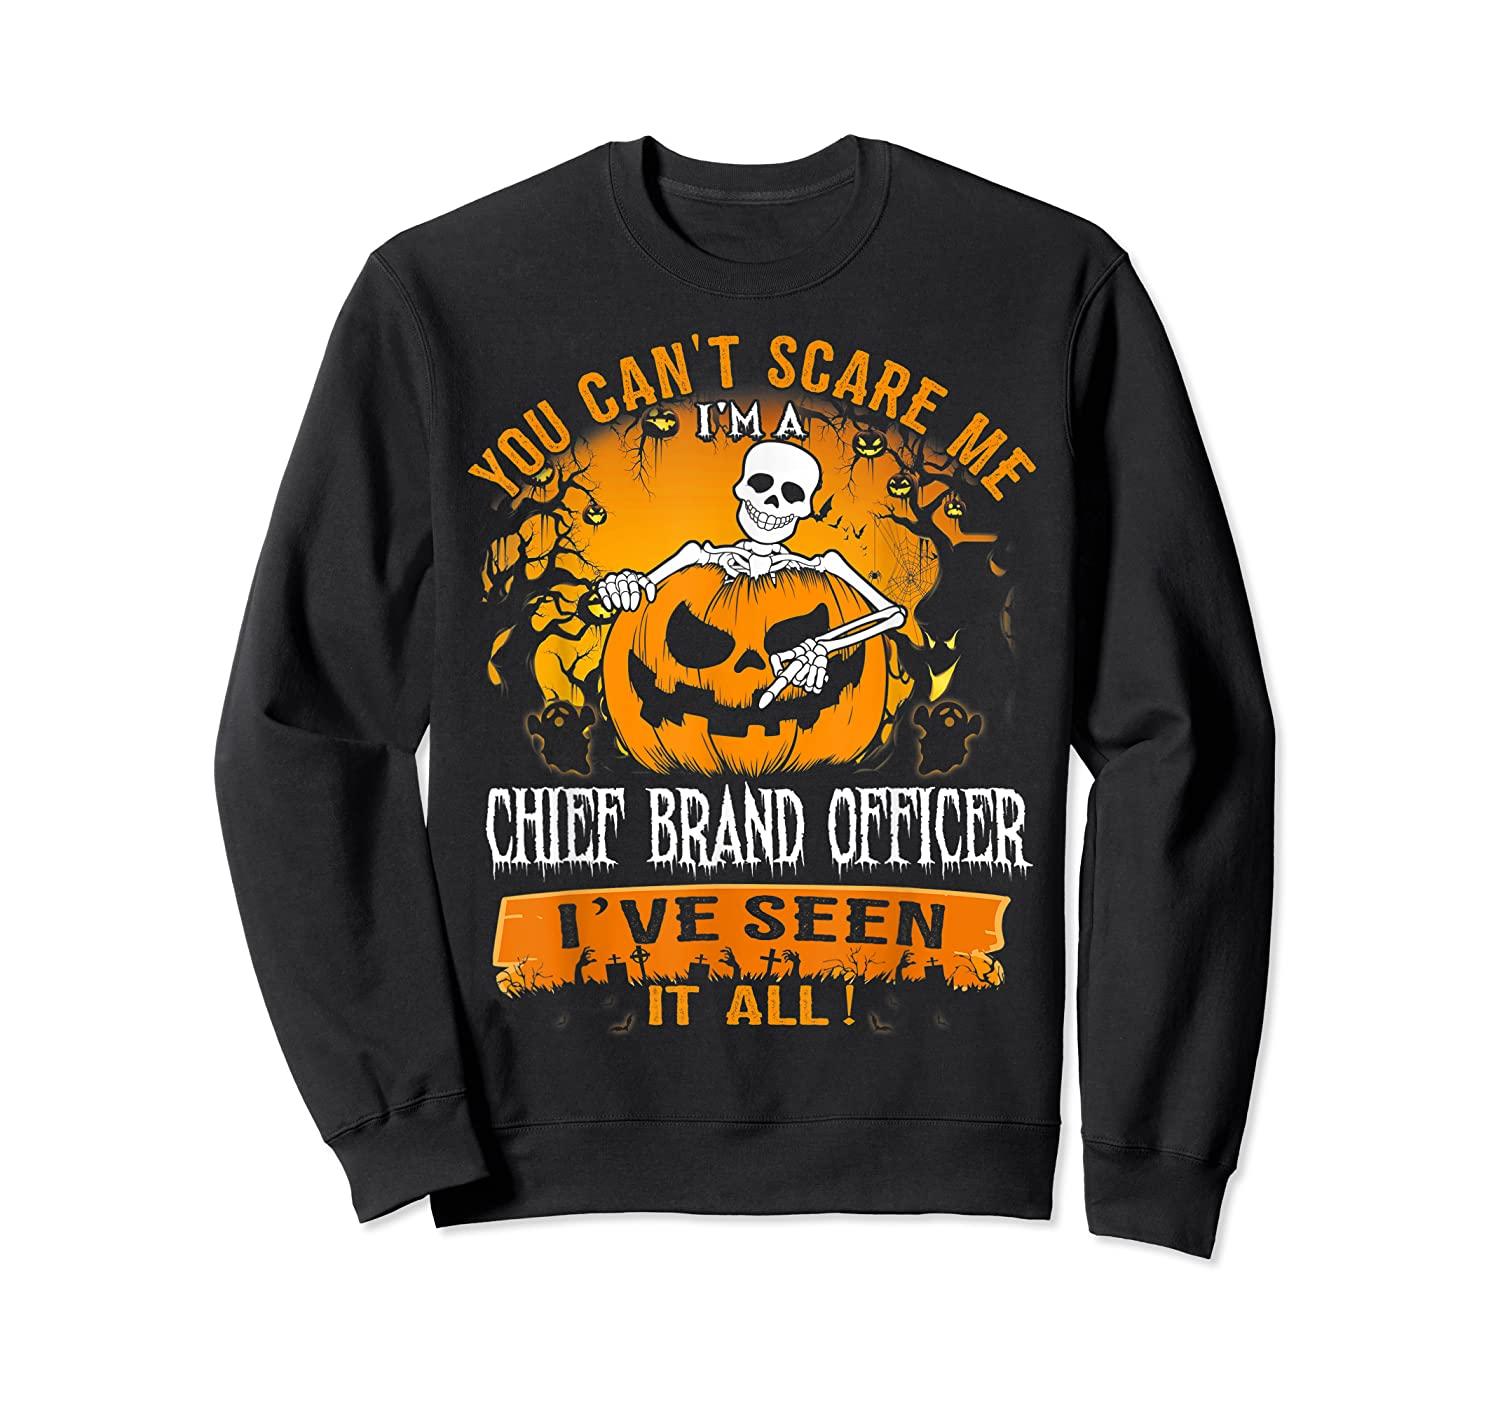 You Can't Scare Me I Am A Chief Brand Officer Halloween Shirts Crewneck Sweater